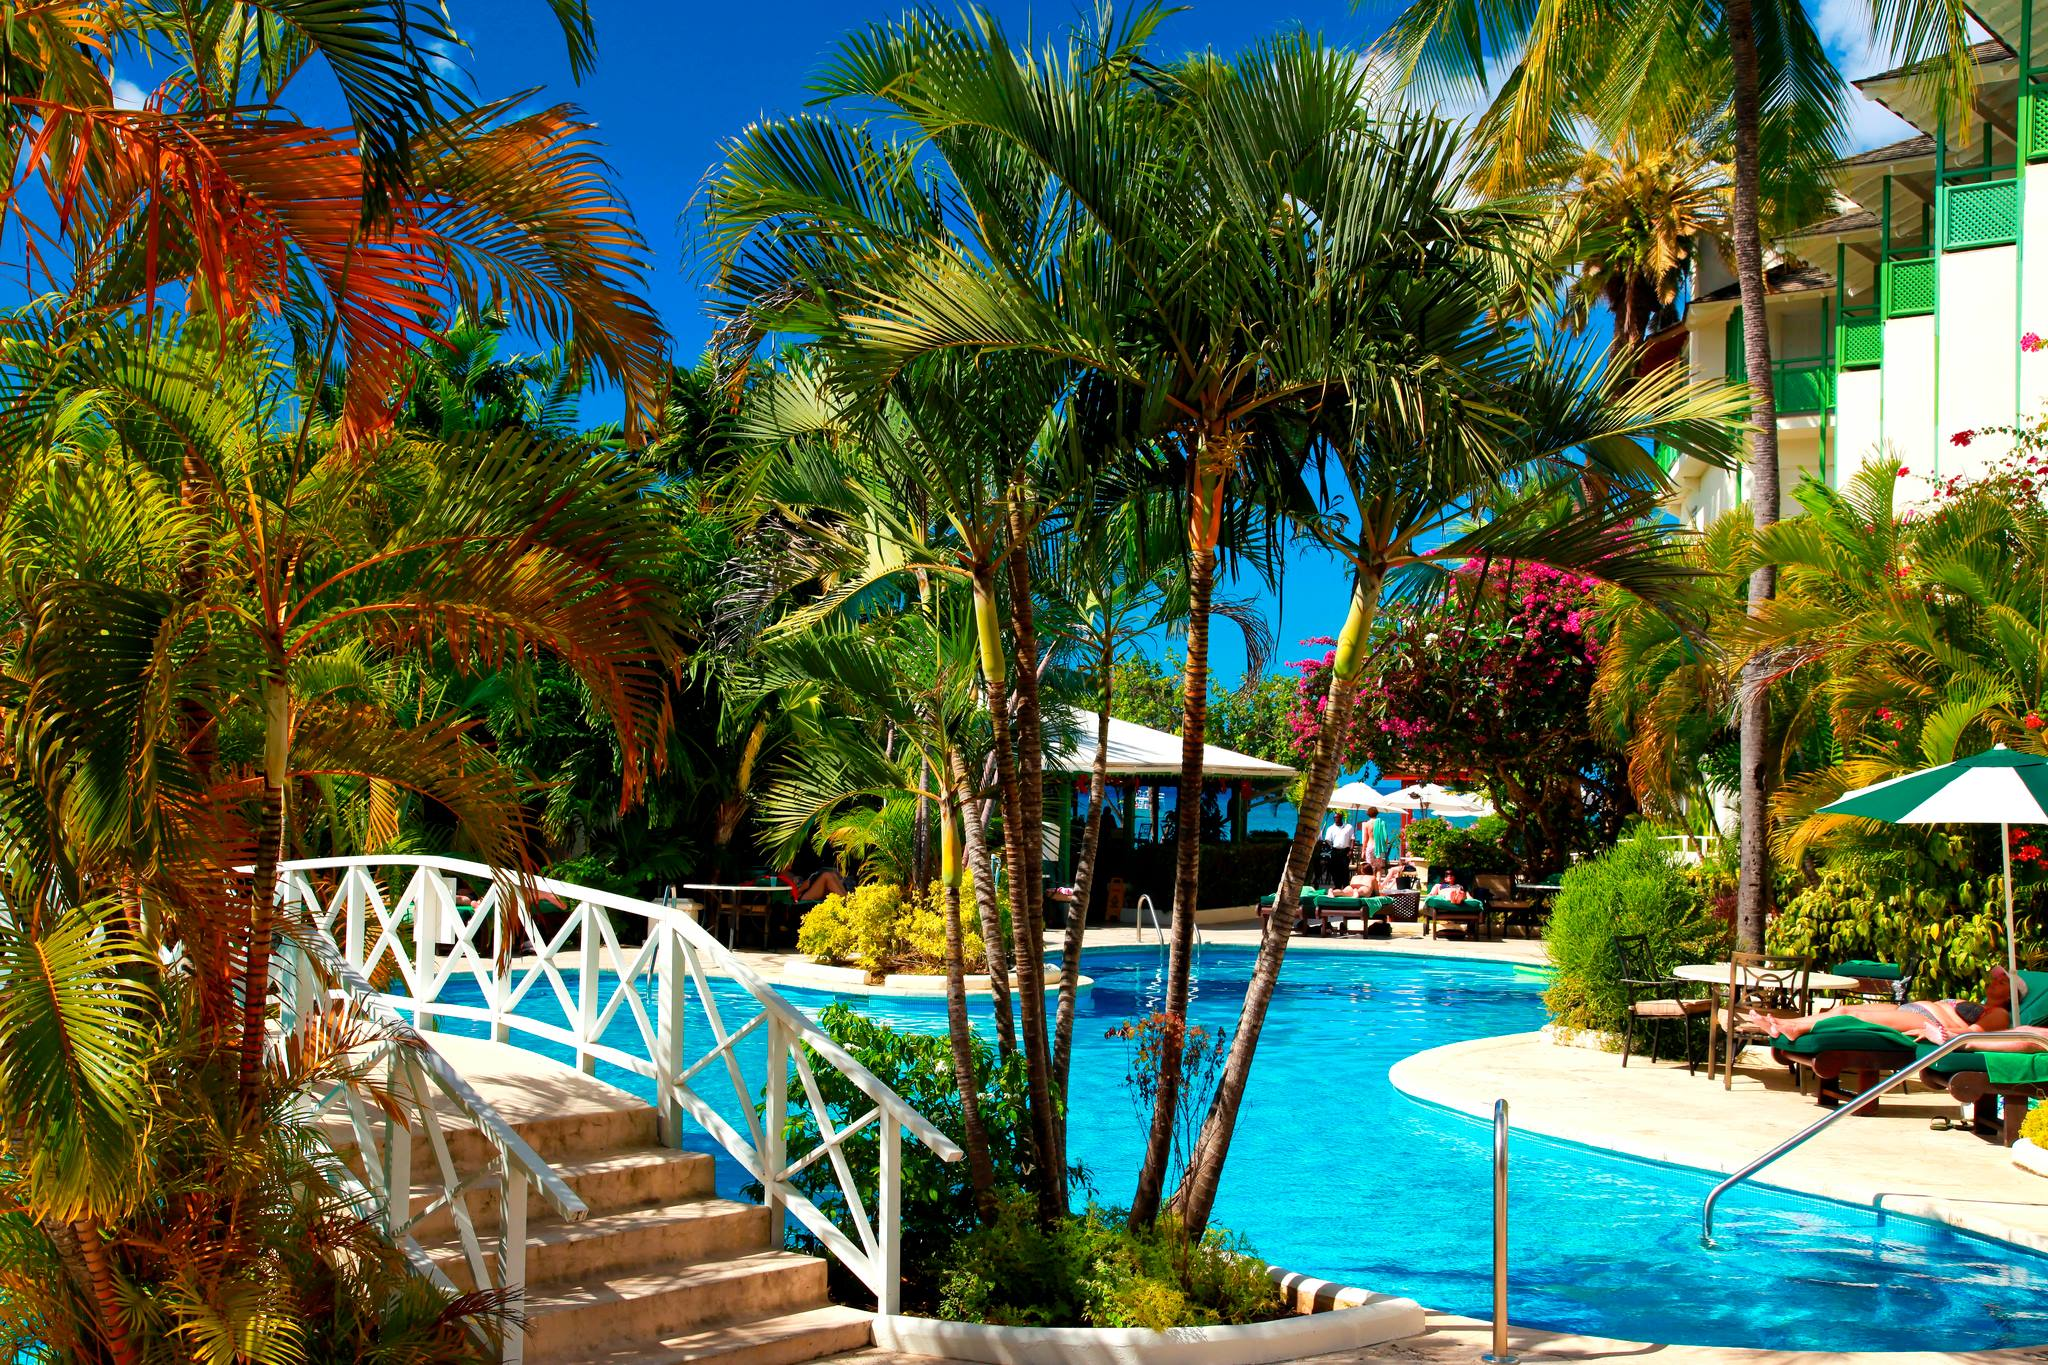 Mango Bay Barbados Reviews – 4 Star All Inclusive